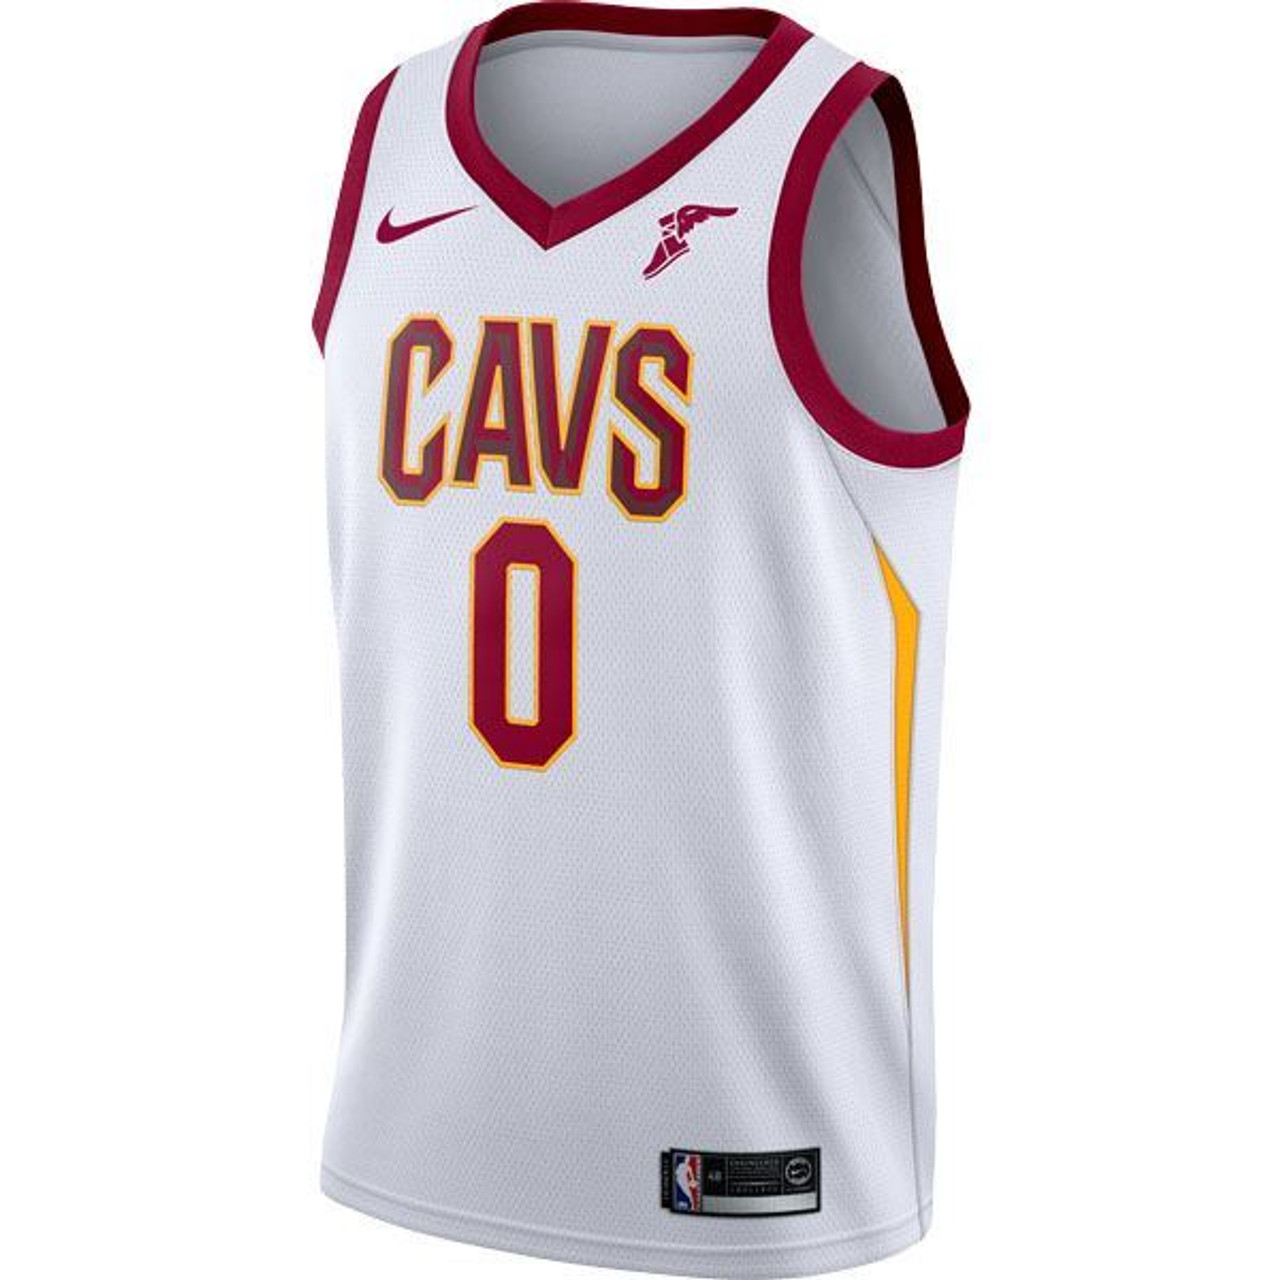 [WHITE] Big Kids #0 Kevin Love Jersey with Wingfoot